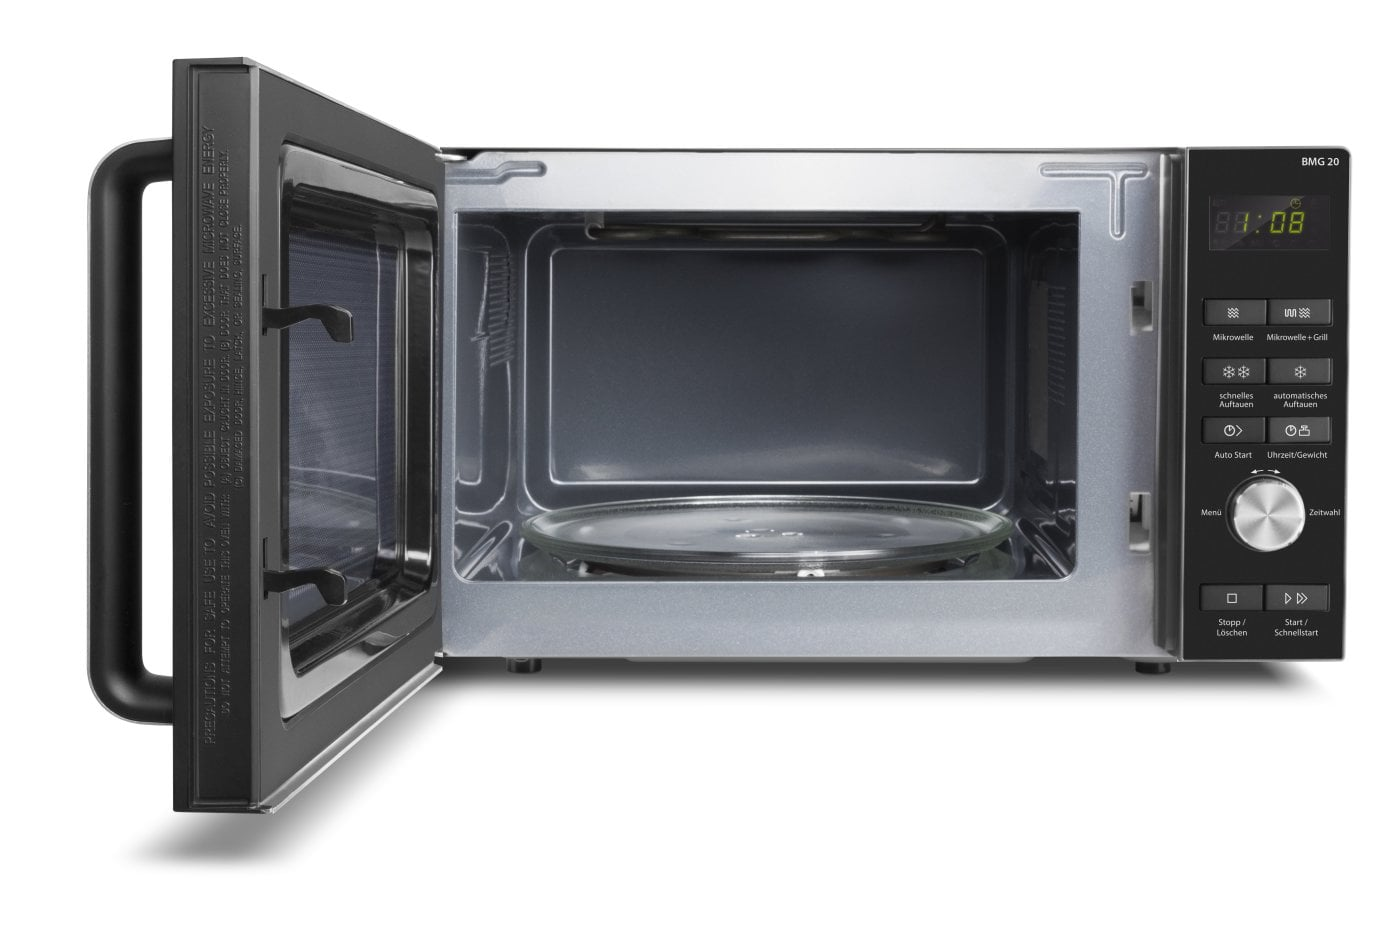 Design Microwave Grill Bmg 20 Caso